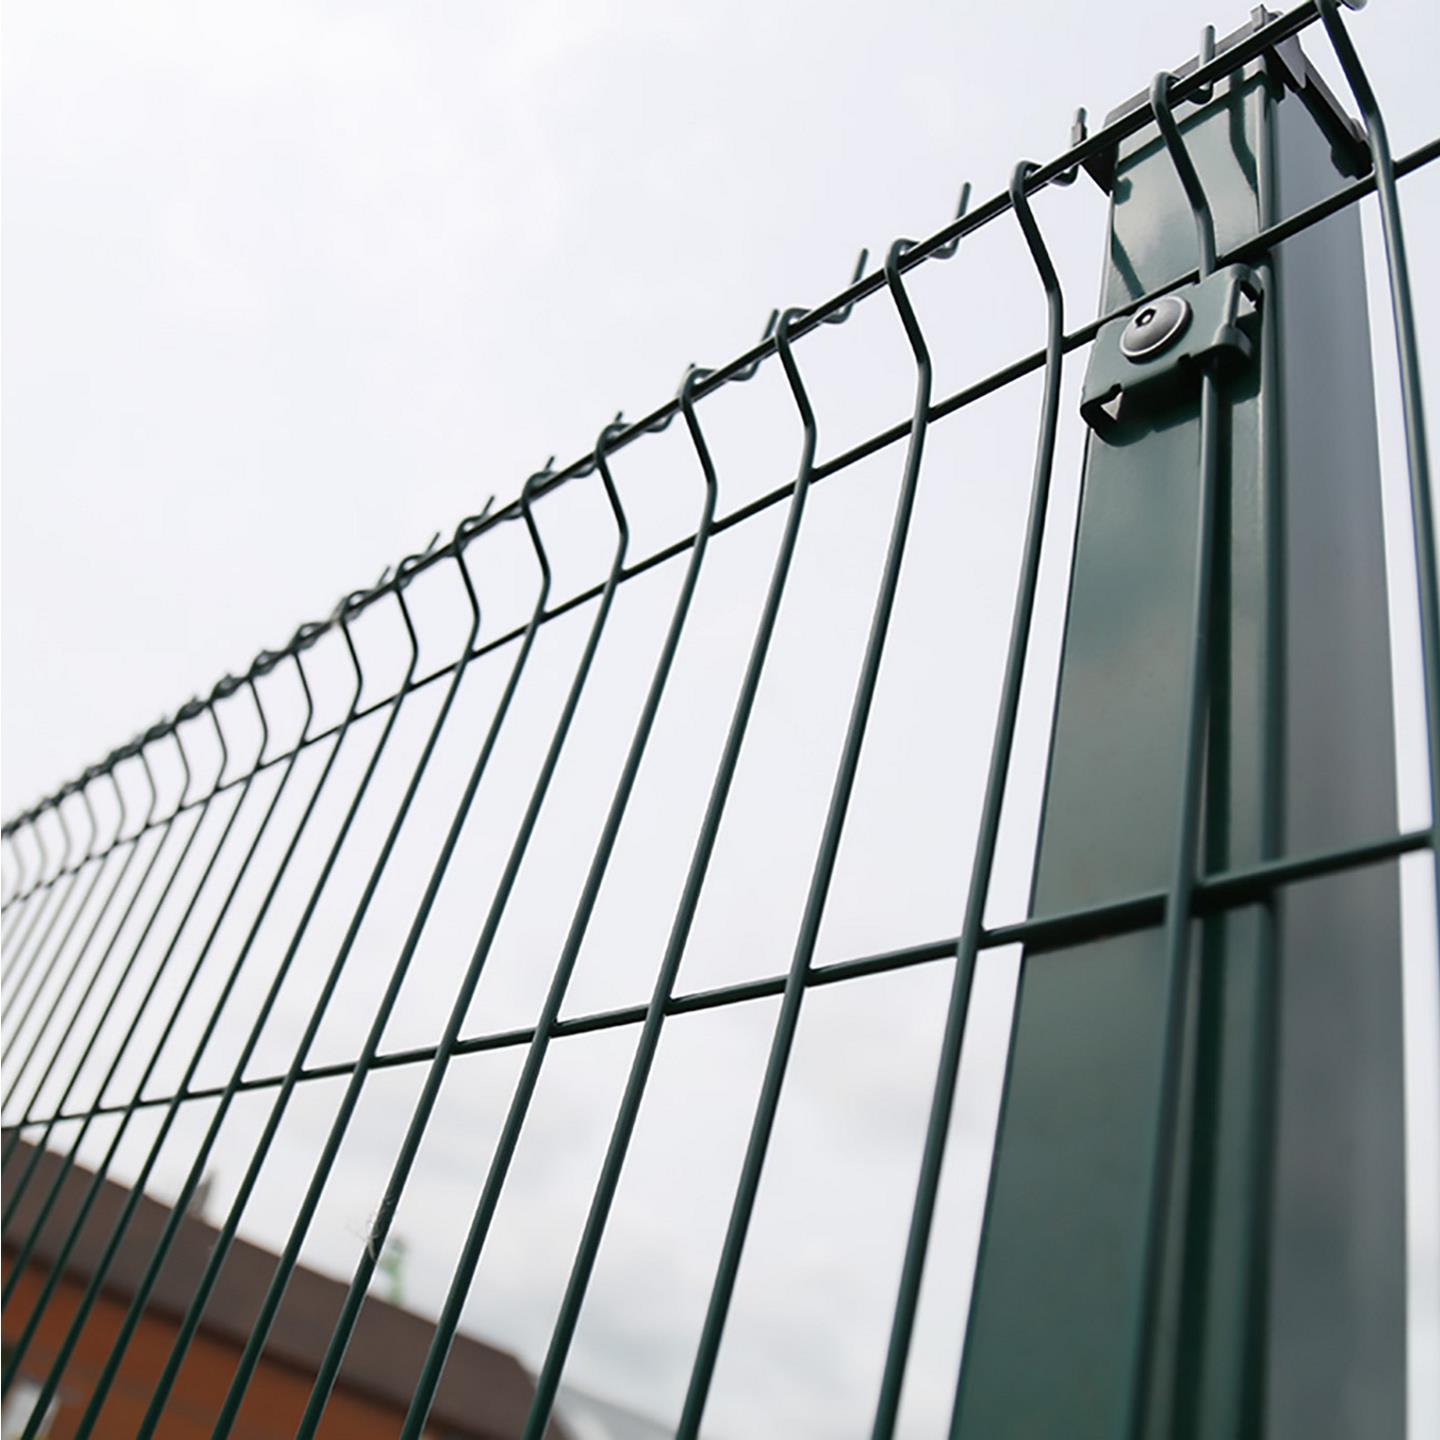 Security Fencing | Ringwood Fencing | Security Fences Cheshire